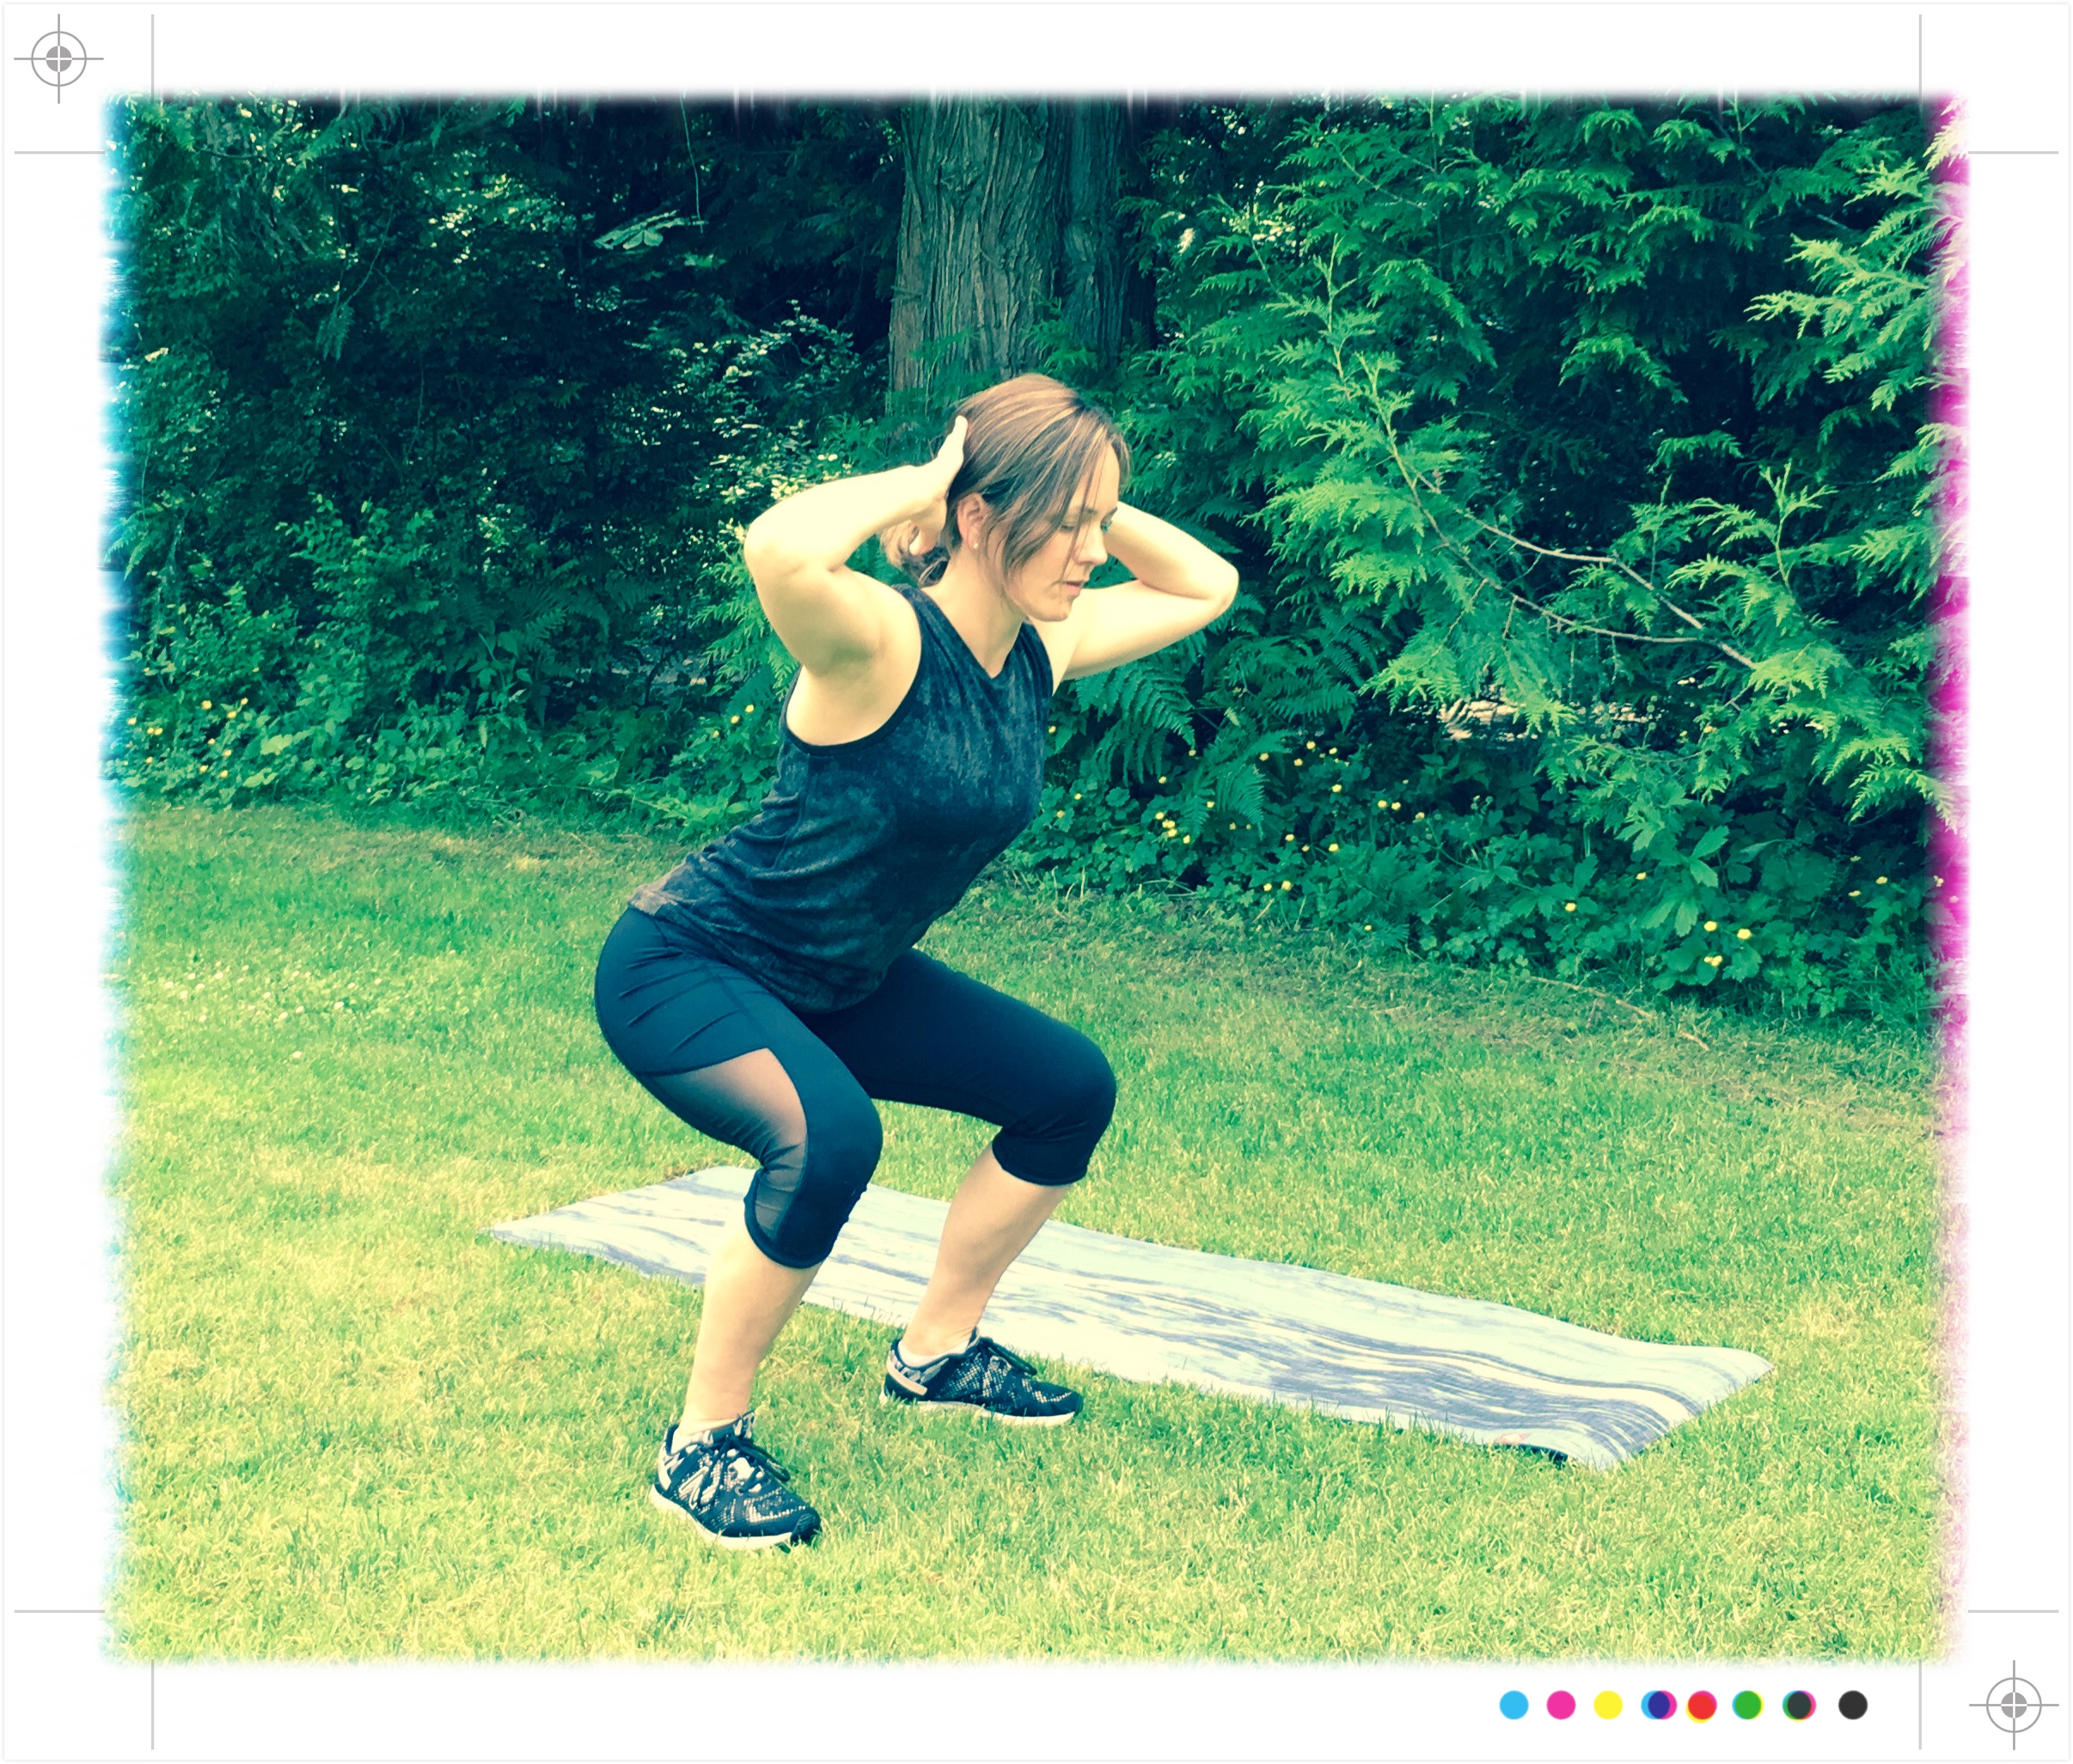 Bodyweight squats. Because it's a movement that helps to mobilize the hips, knees, and ankles, warms up the glutes, and gets the heart rate up. Plus squats are always included in their workouts. #nonnegotiable